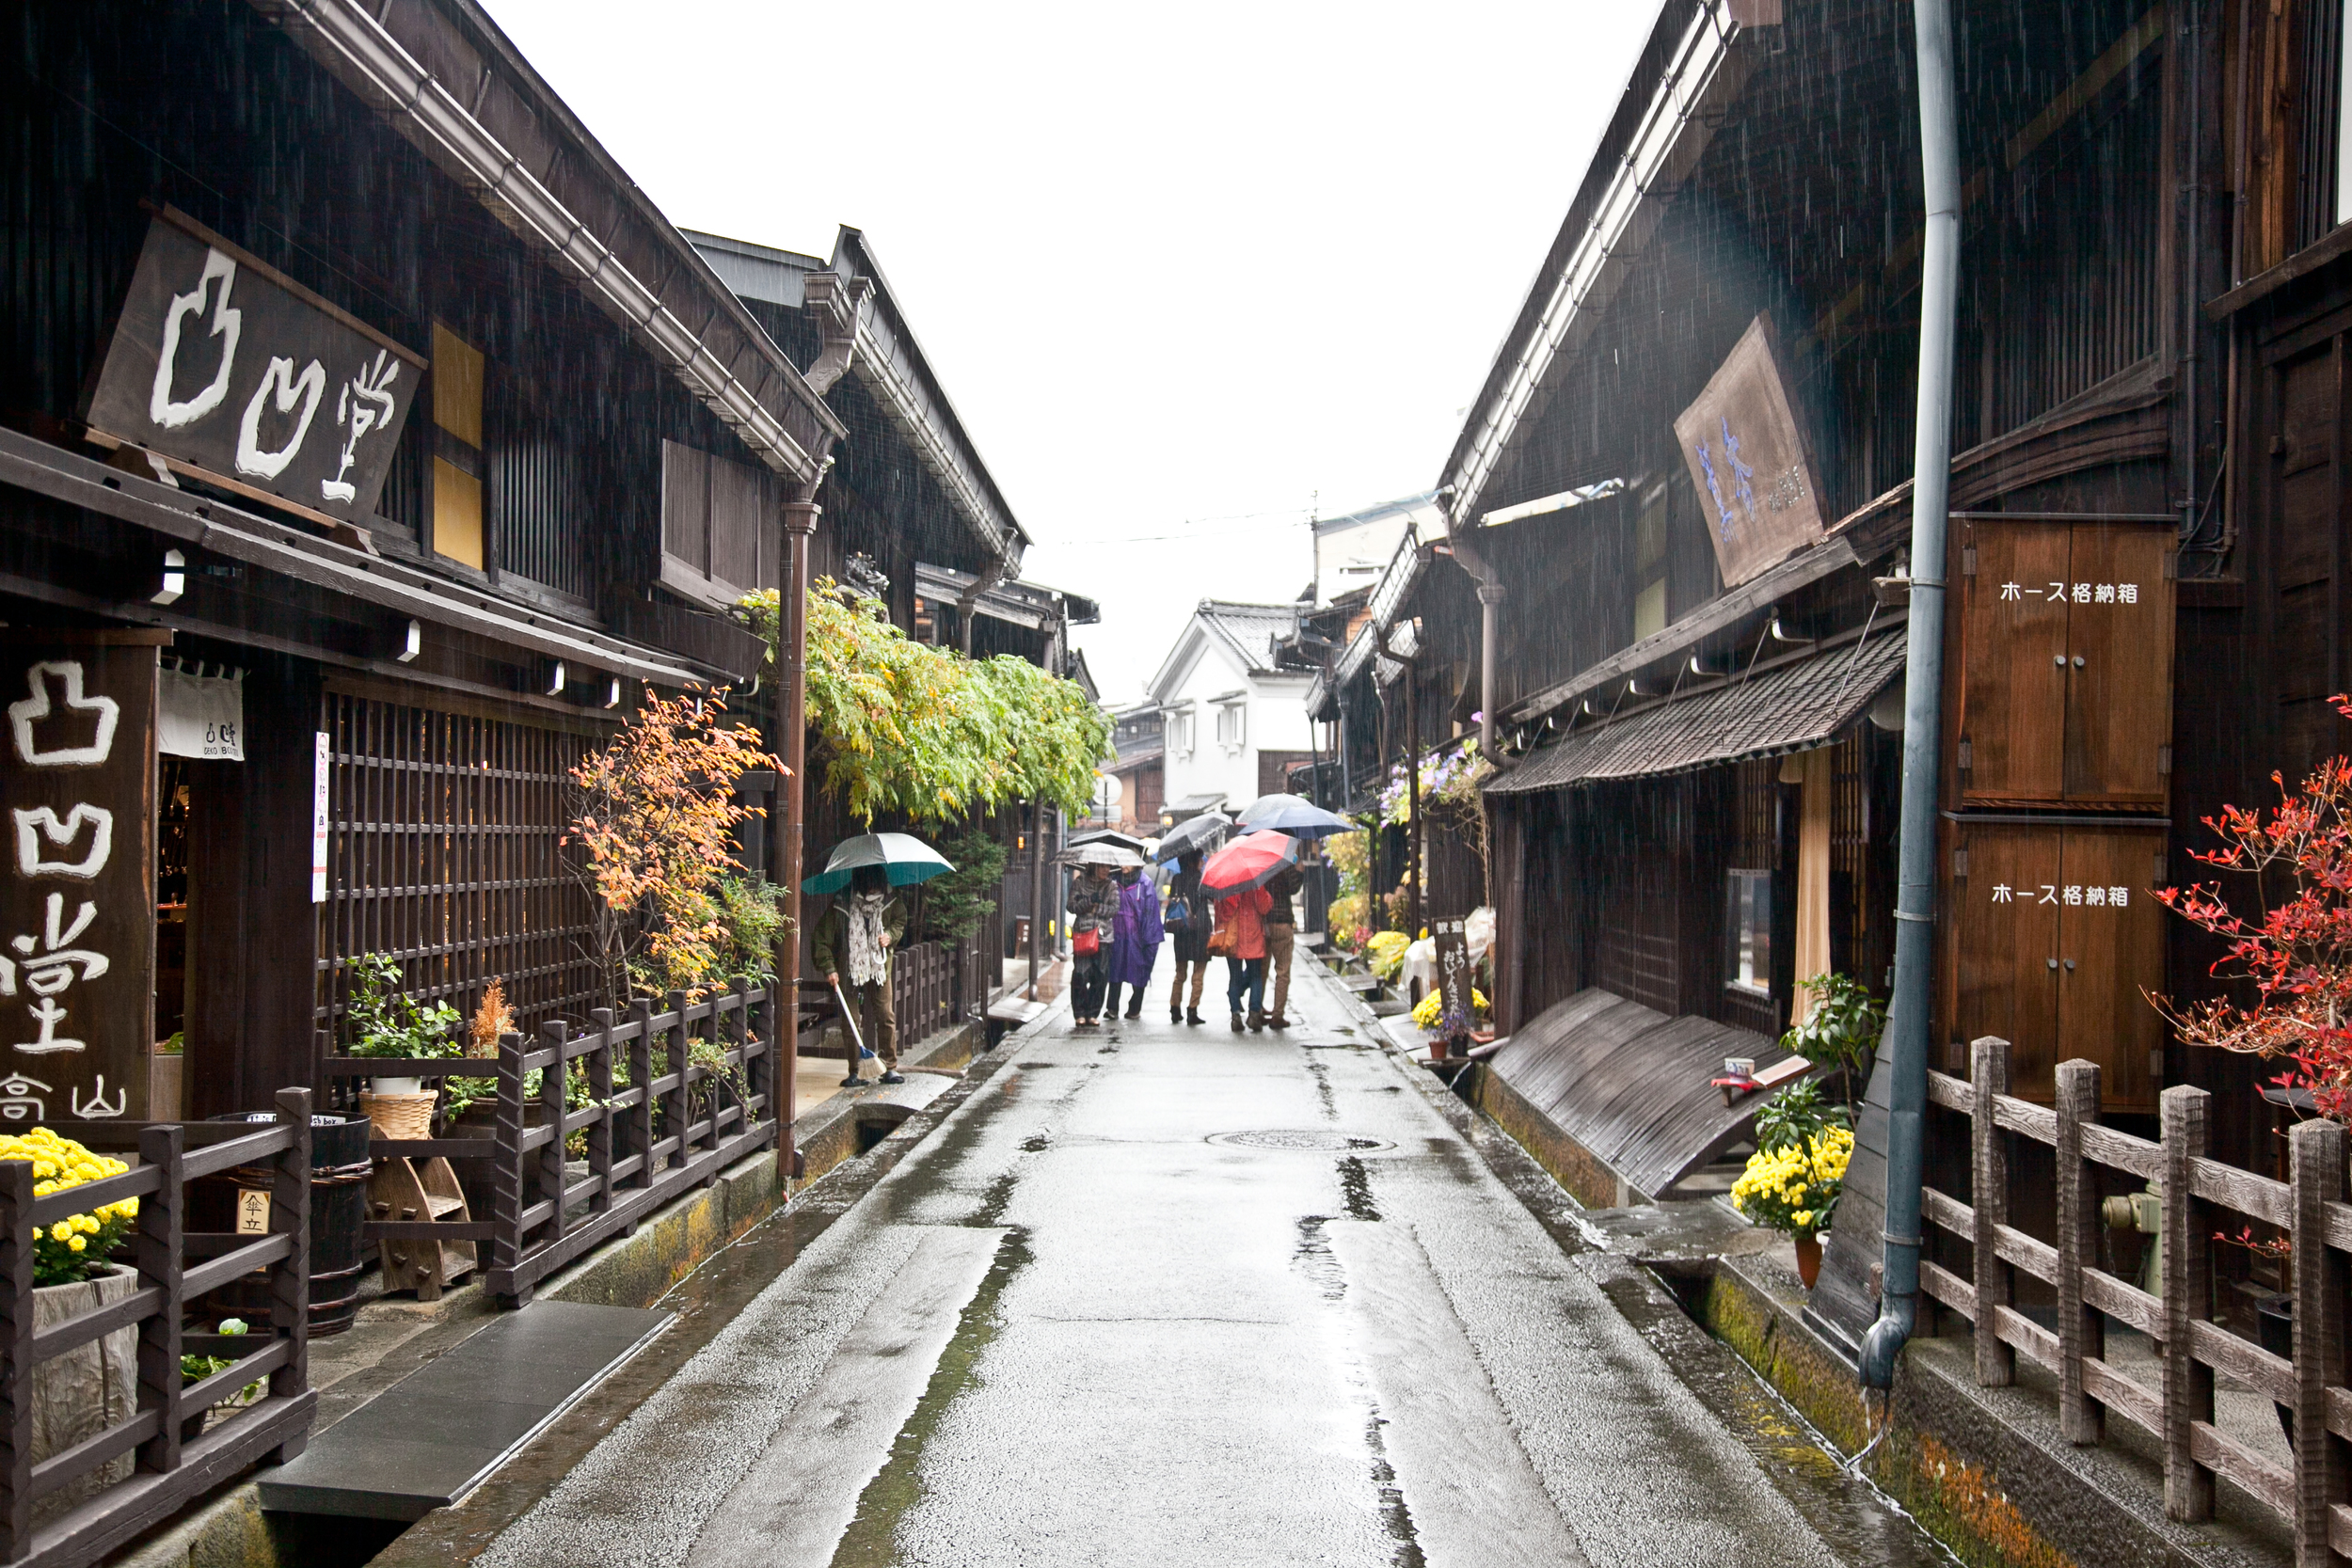 The traditional homes and stores of  Takayama  all share a distinct brown color and regional architecture